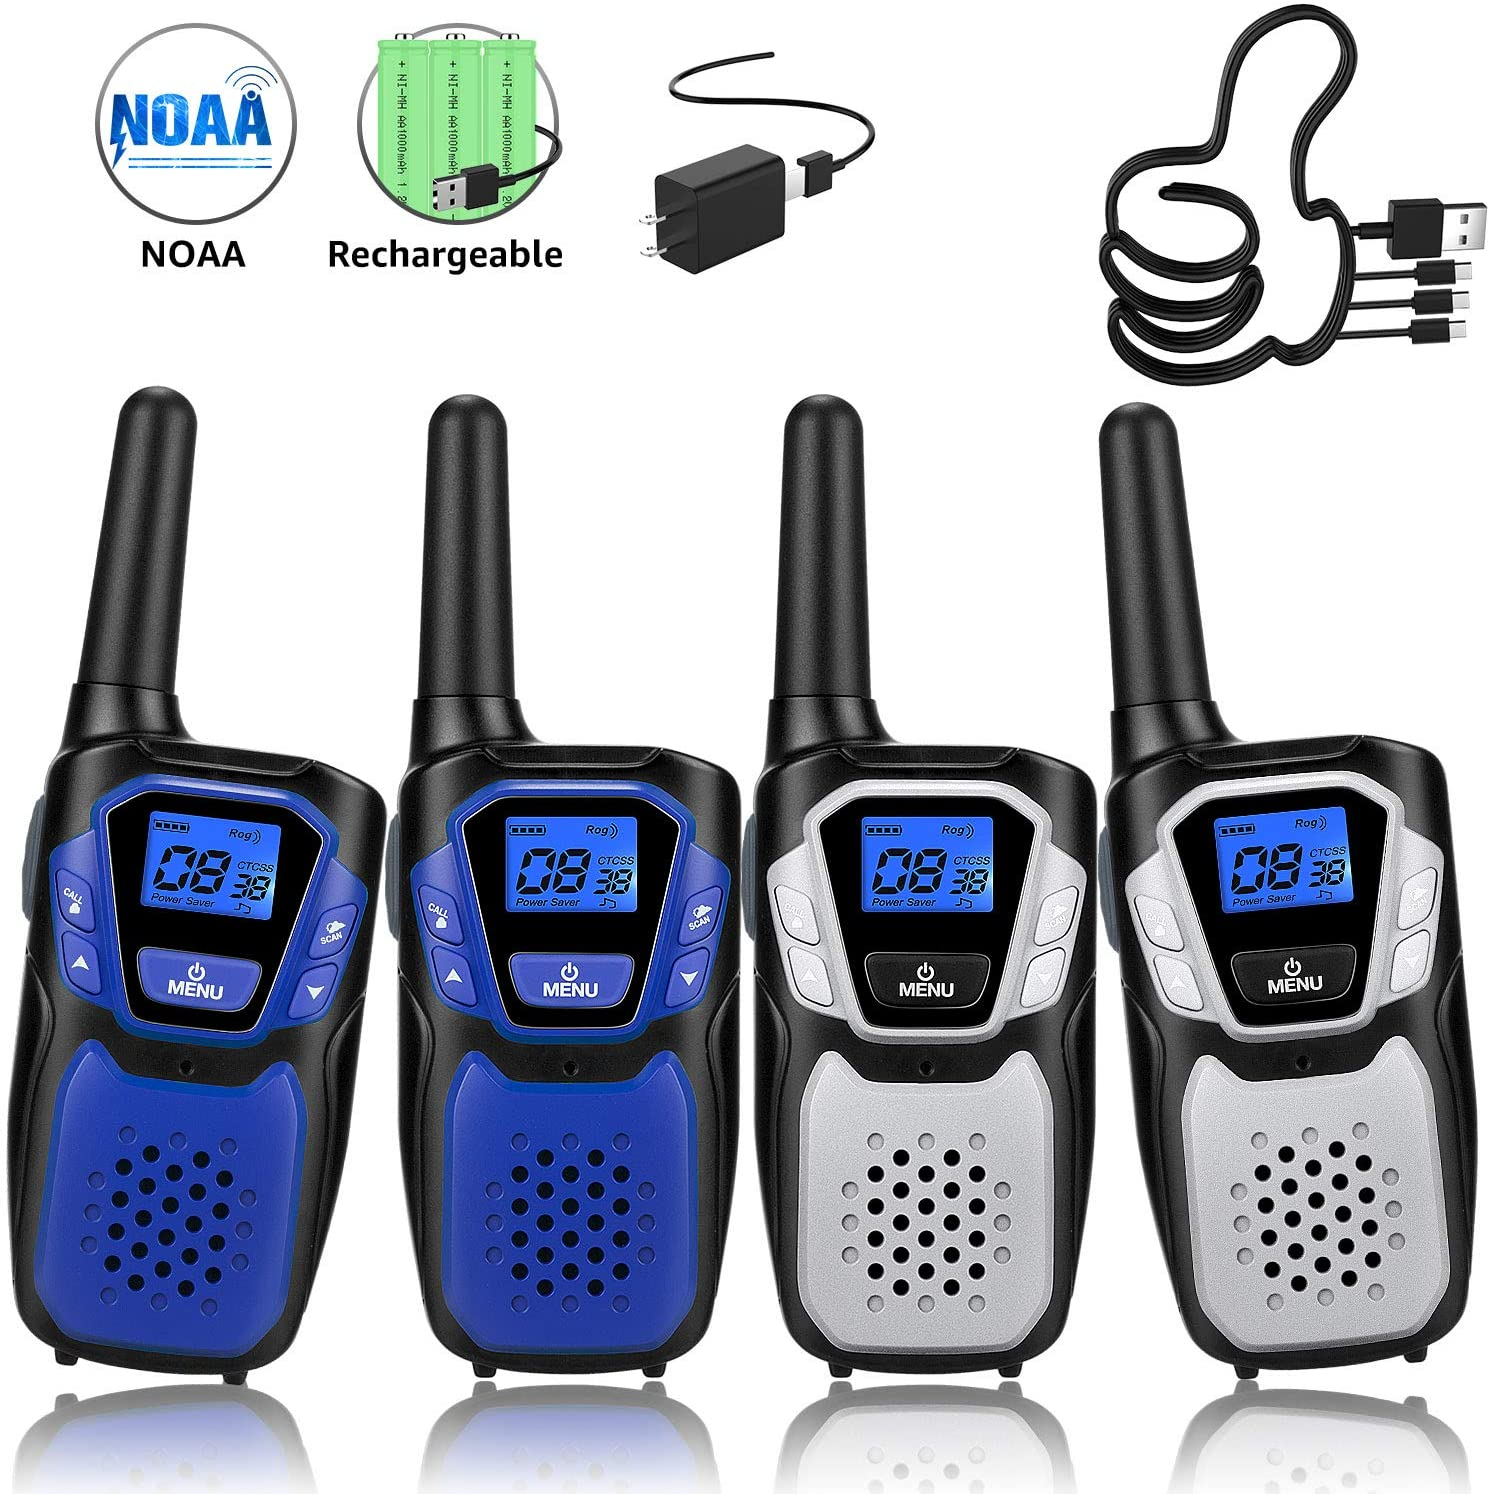 Rechargeable Walkie Talkies For Kids